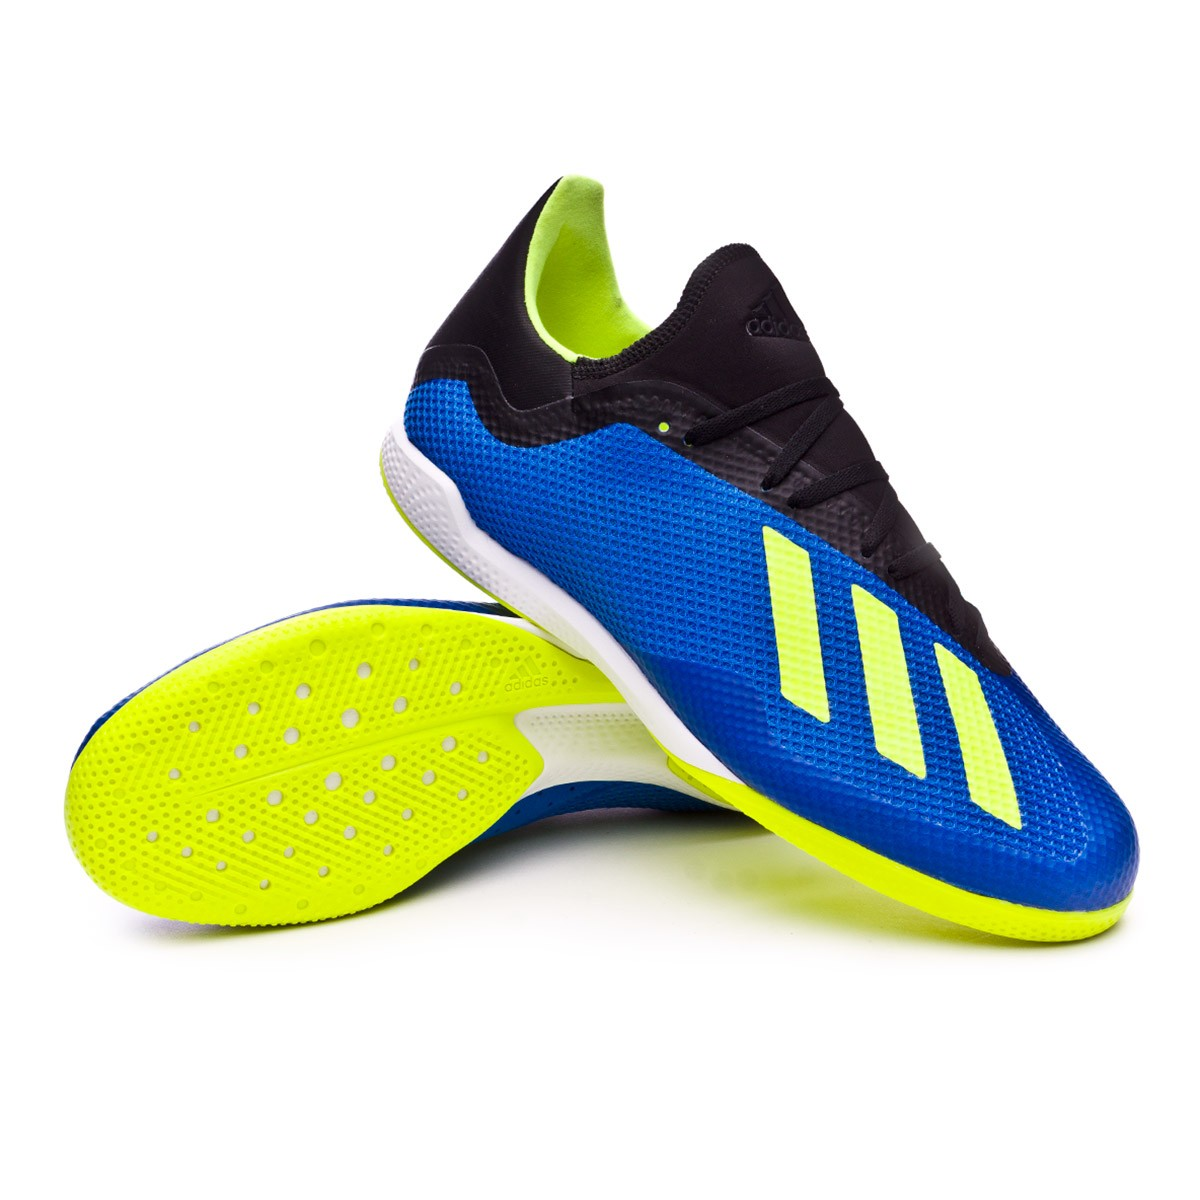 636a90e67267 Futsal Boot adidas X Tango 18.3 IN Foot blue-Solar yellow-Black - Football  store Fútbol Emotion